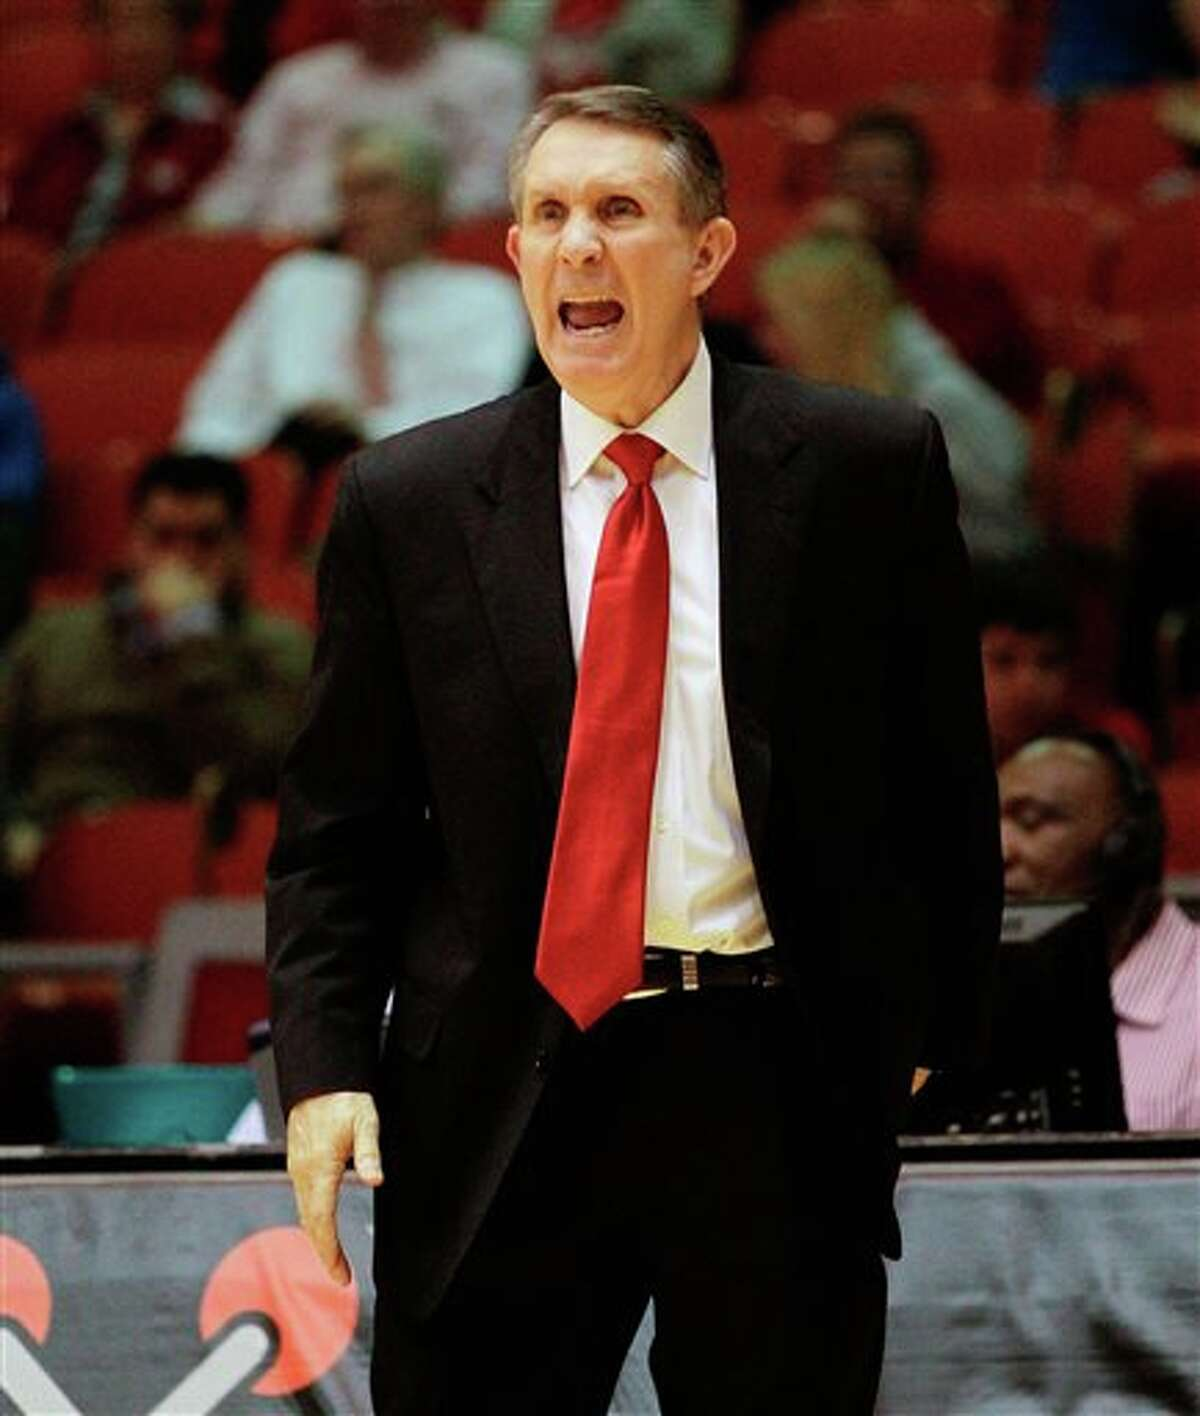 Houston head coach James Dickey yells out instructions against Memphis during the second half of an NCAA college basketball game, Thursday, Feb. 27, 2014, in Houston. Houston won 77-68. (AP Photo/Bob Levey)